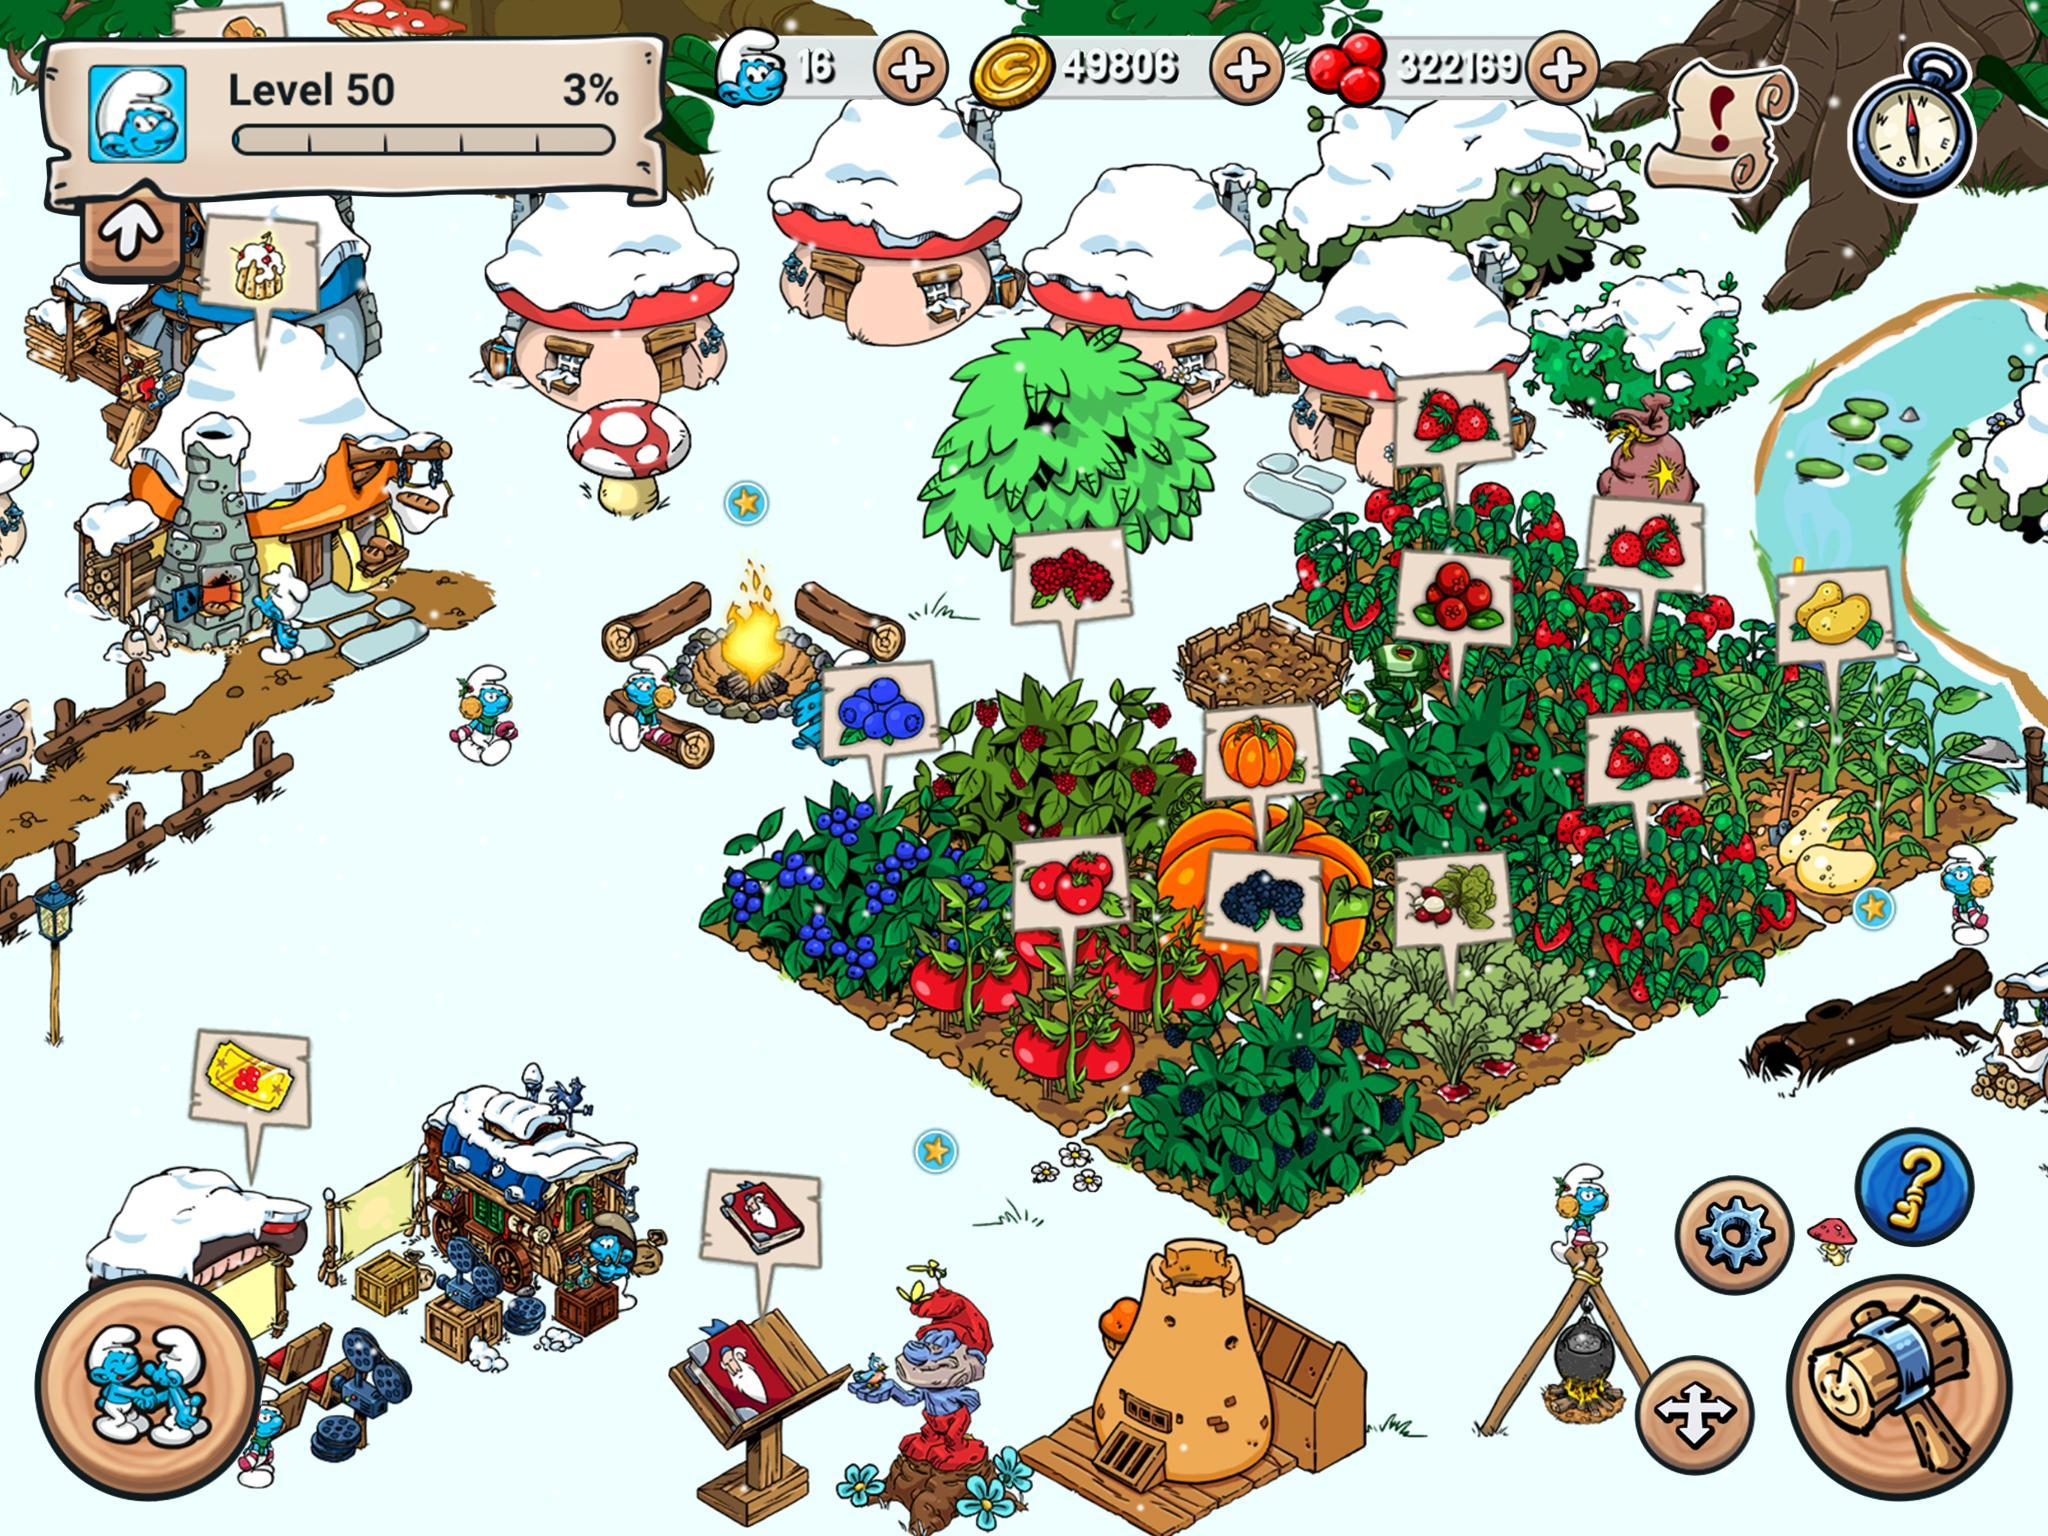 smurfs village for android apk download smurfs village for android apk download